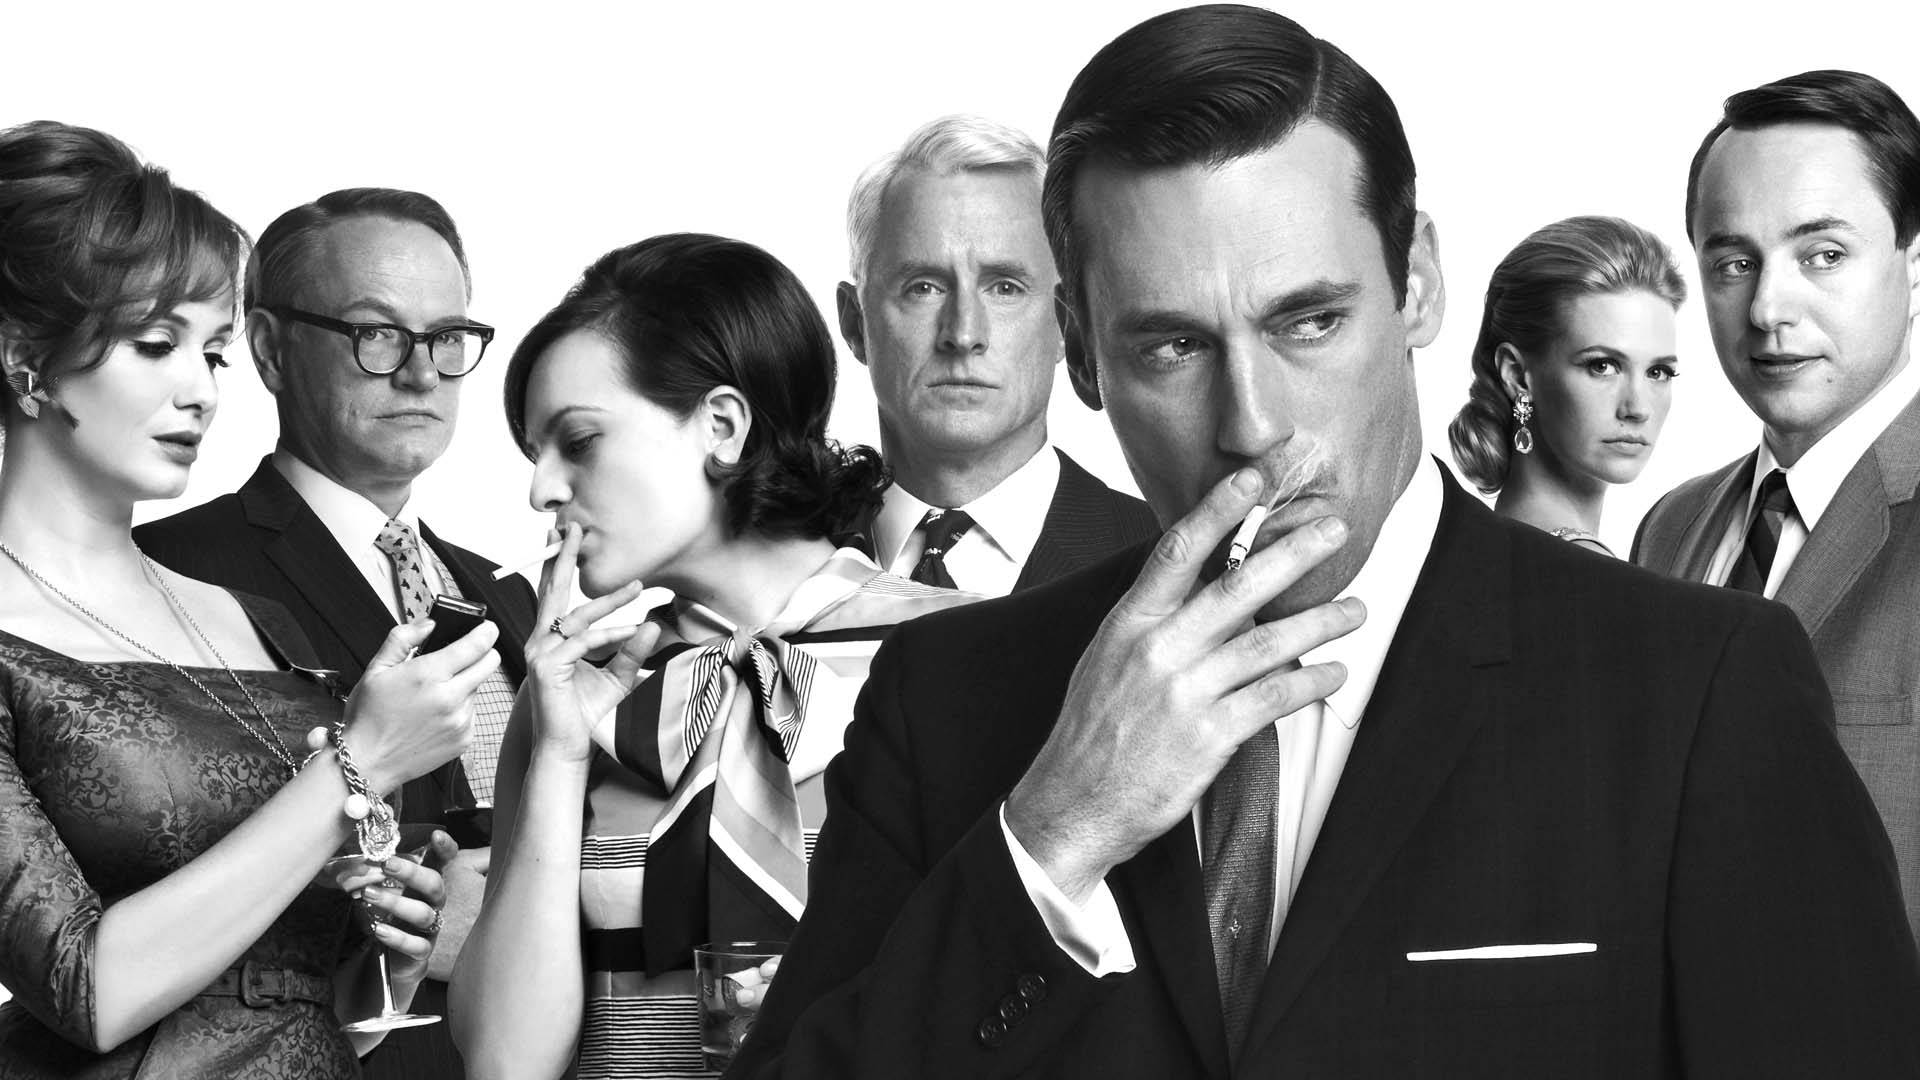 mad_men_cast_bw